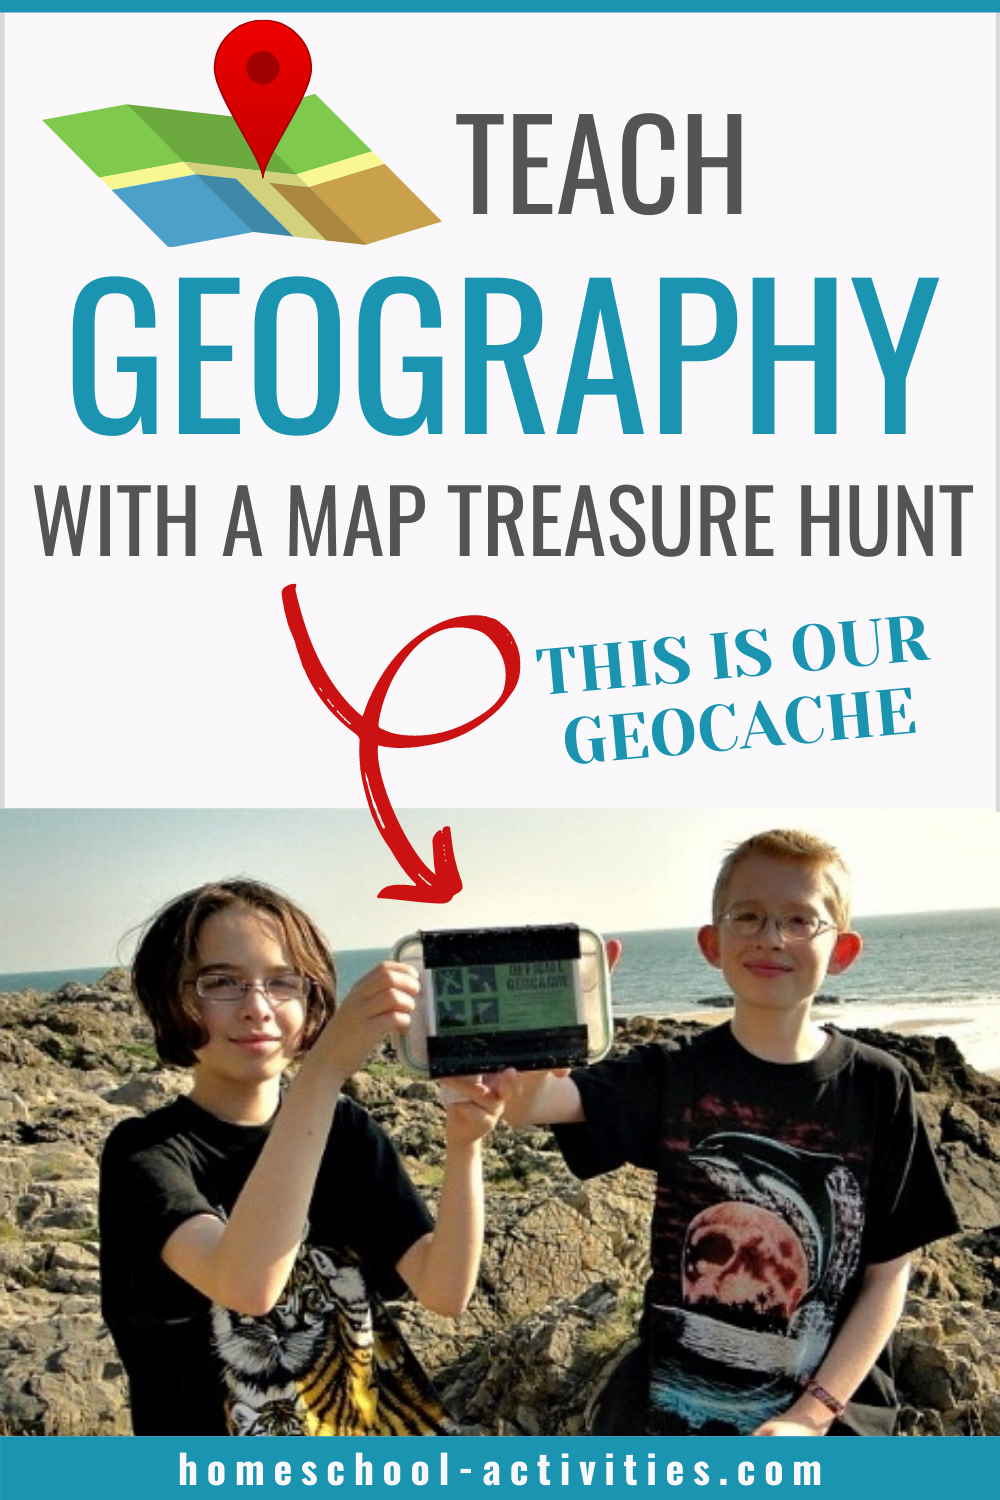 Teaching geography with geocaching